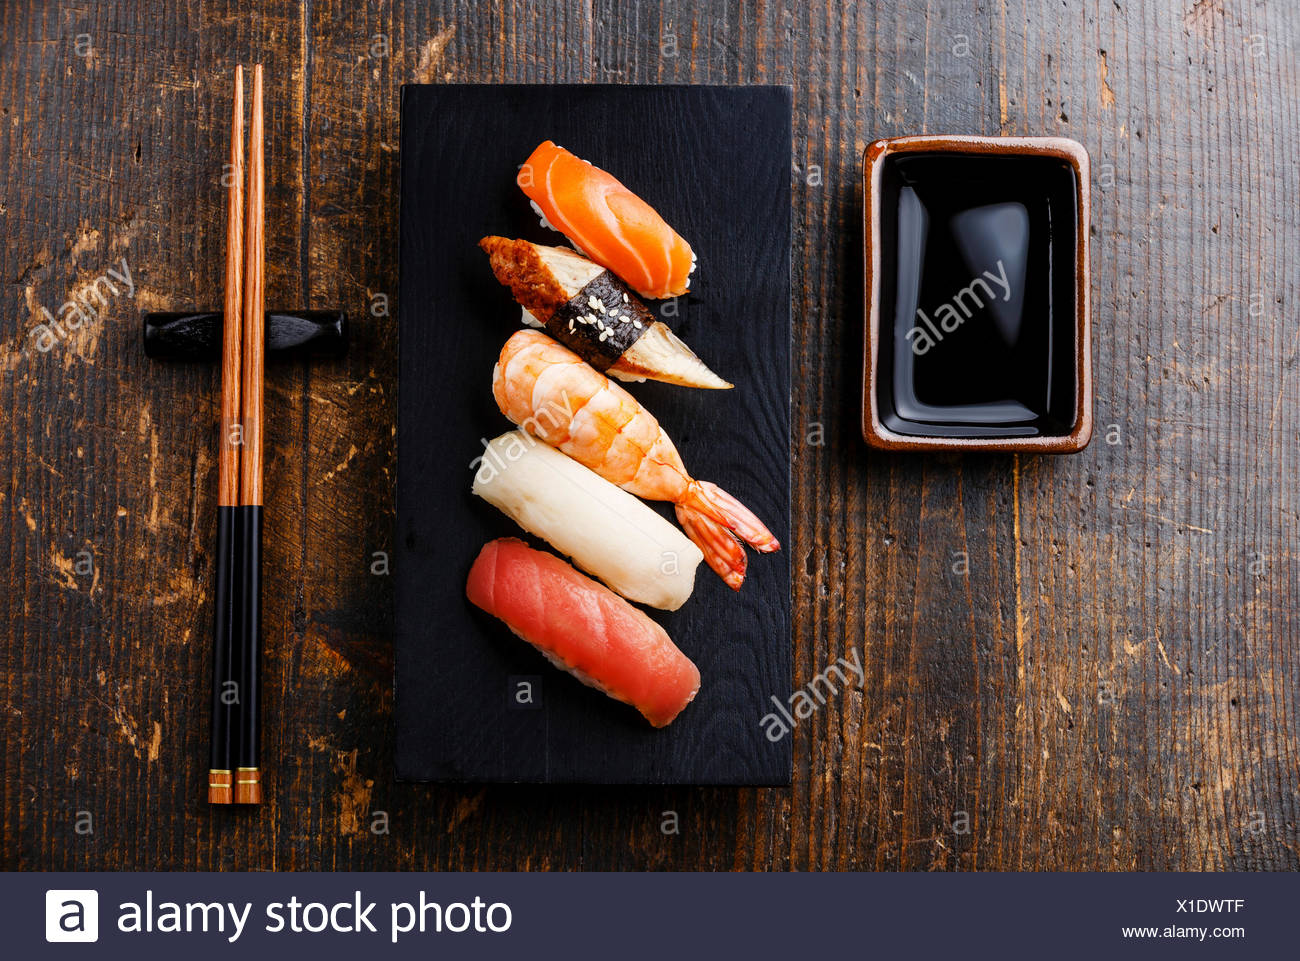 Nigiri sushi set and soy sauce on wooden table background - Stock Image